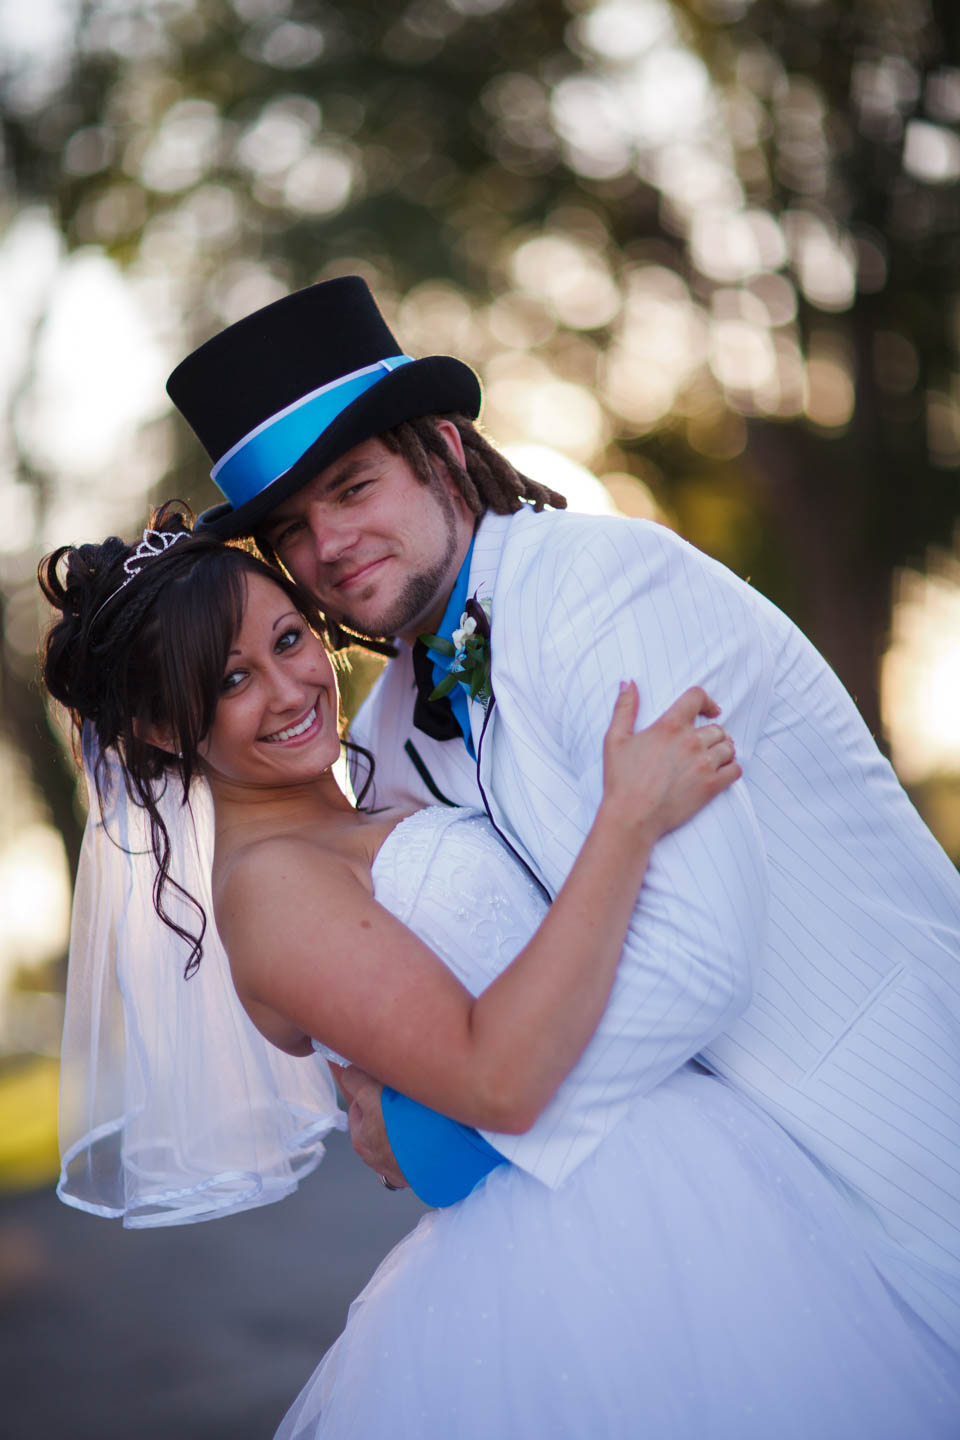 Formal bride and groom portraits during perfect light